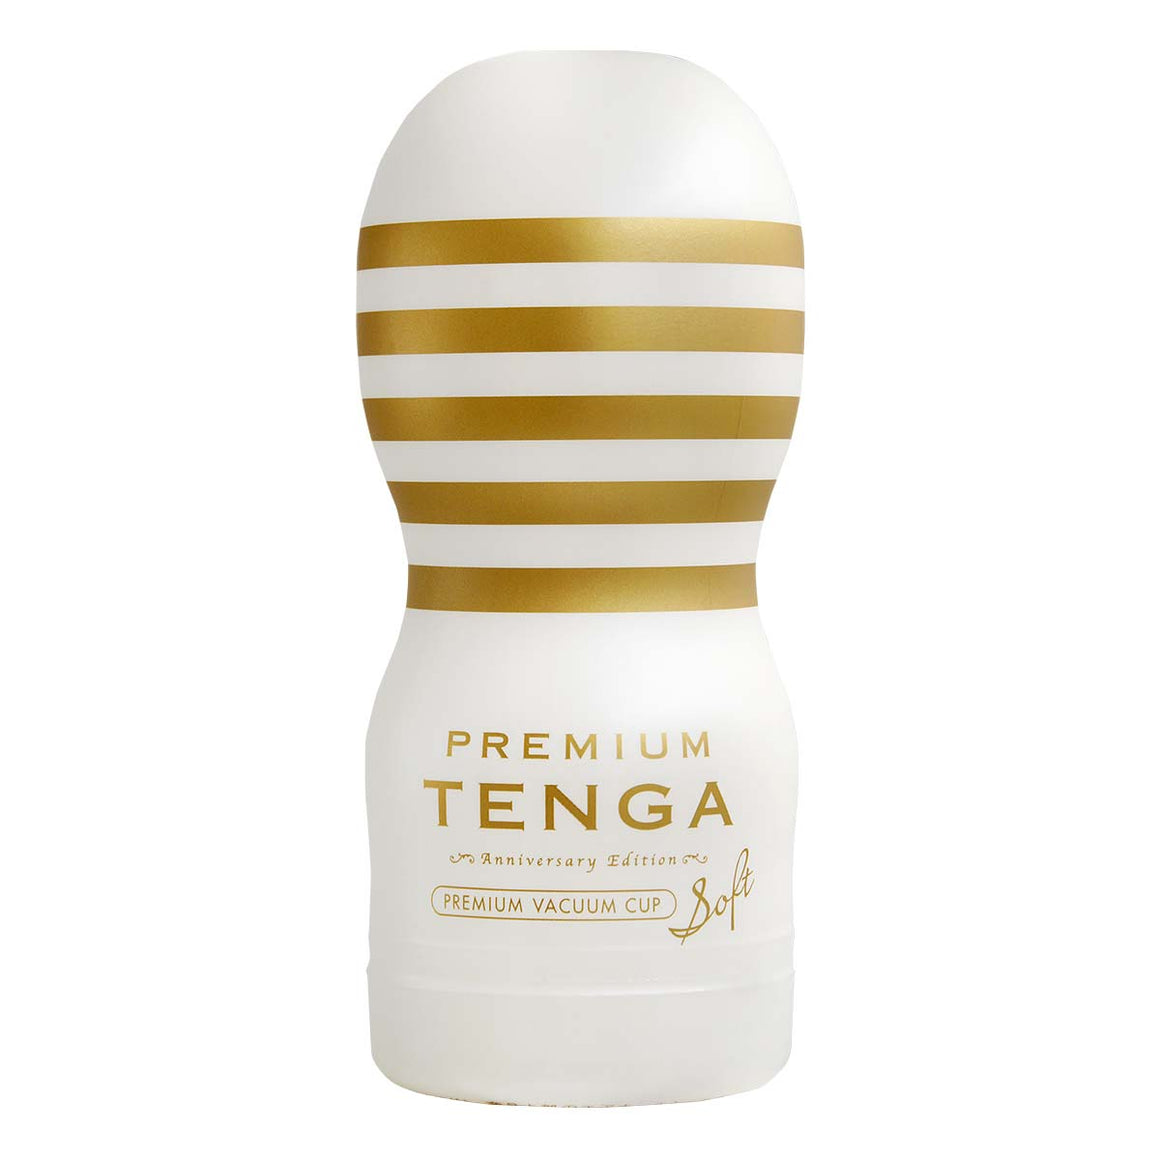 Tenga TOC-101 Premium 10周年限量紀念飛機杯 (柔軟型) - Lovenjoy Club